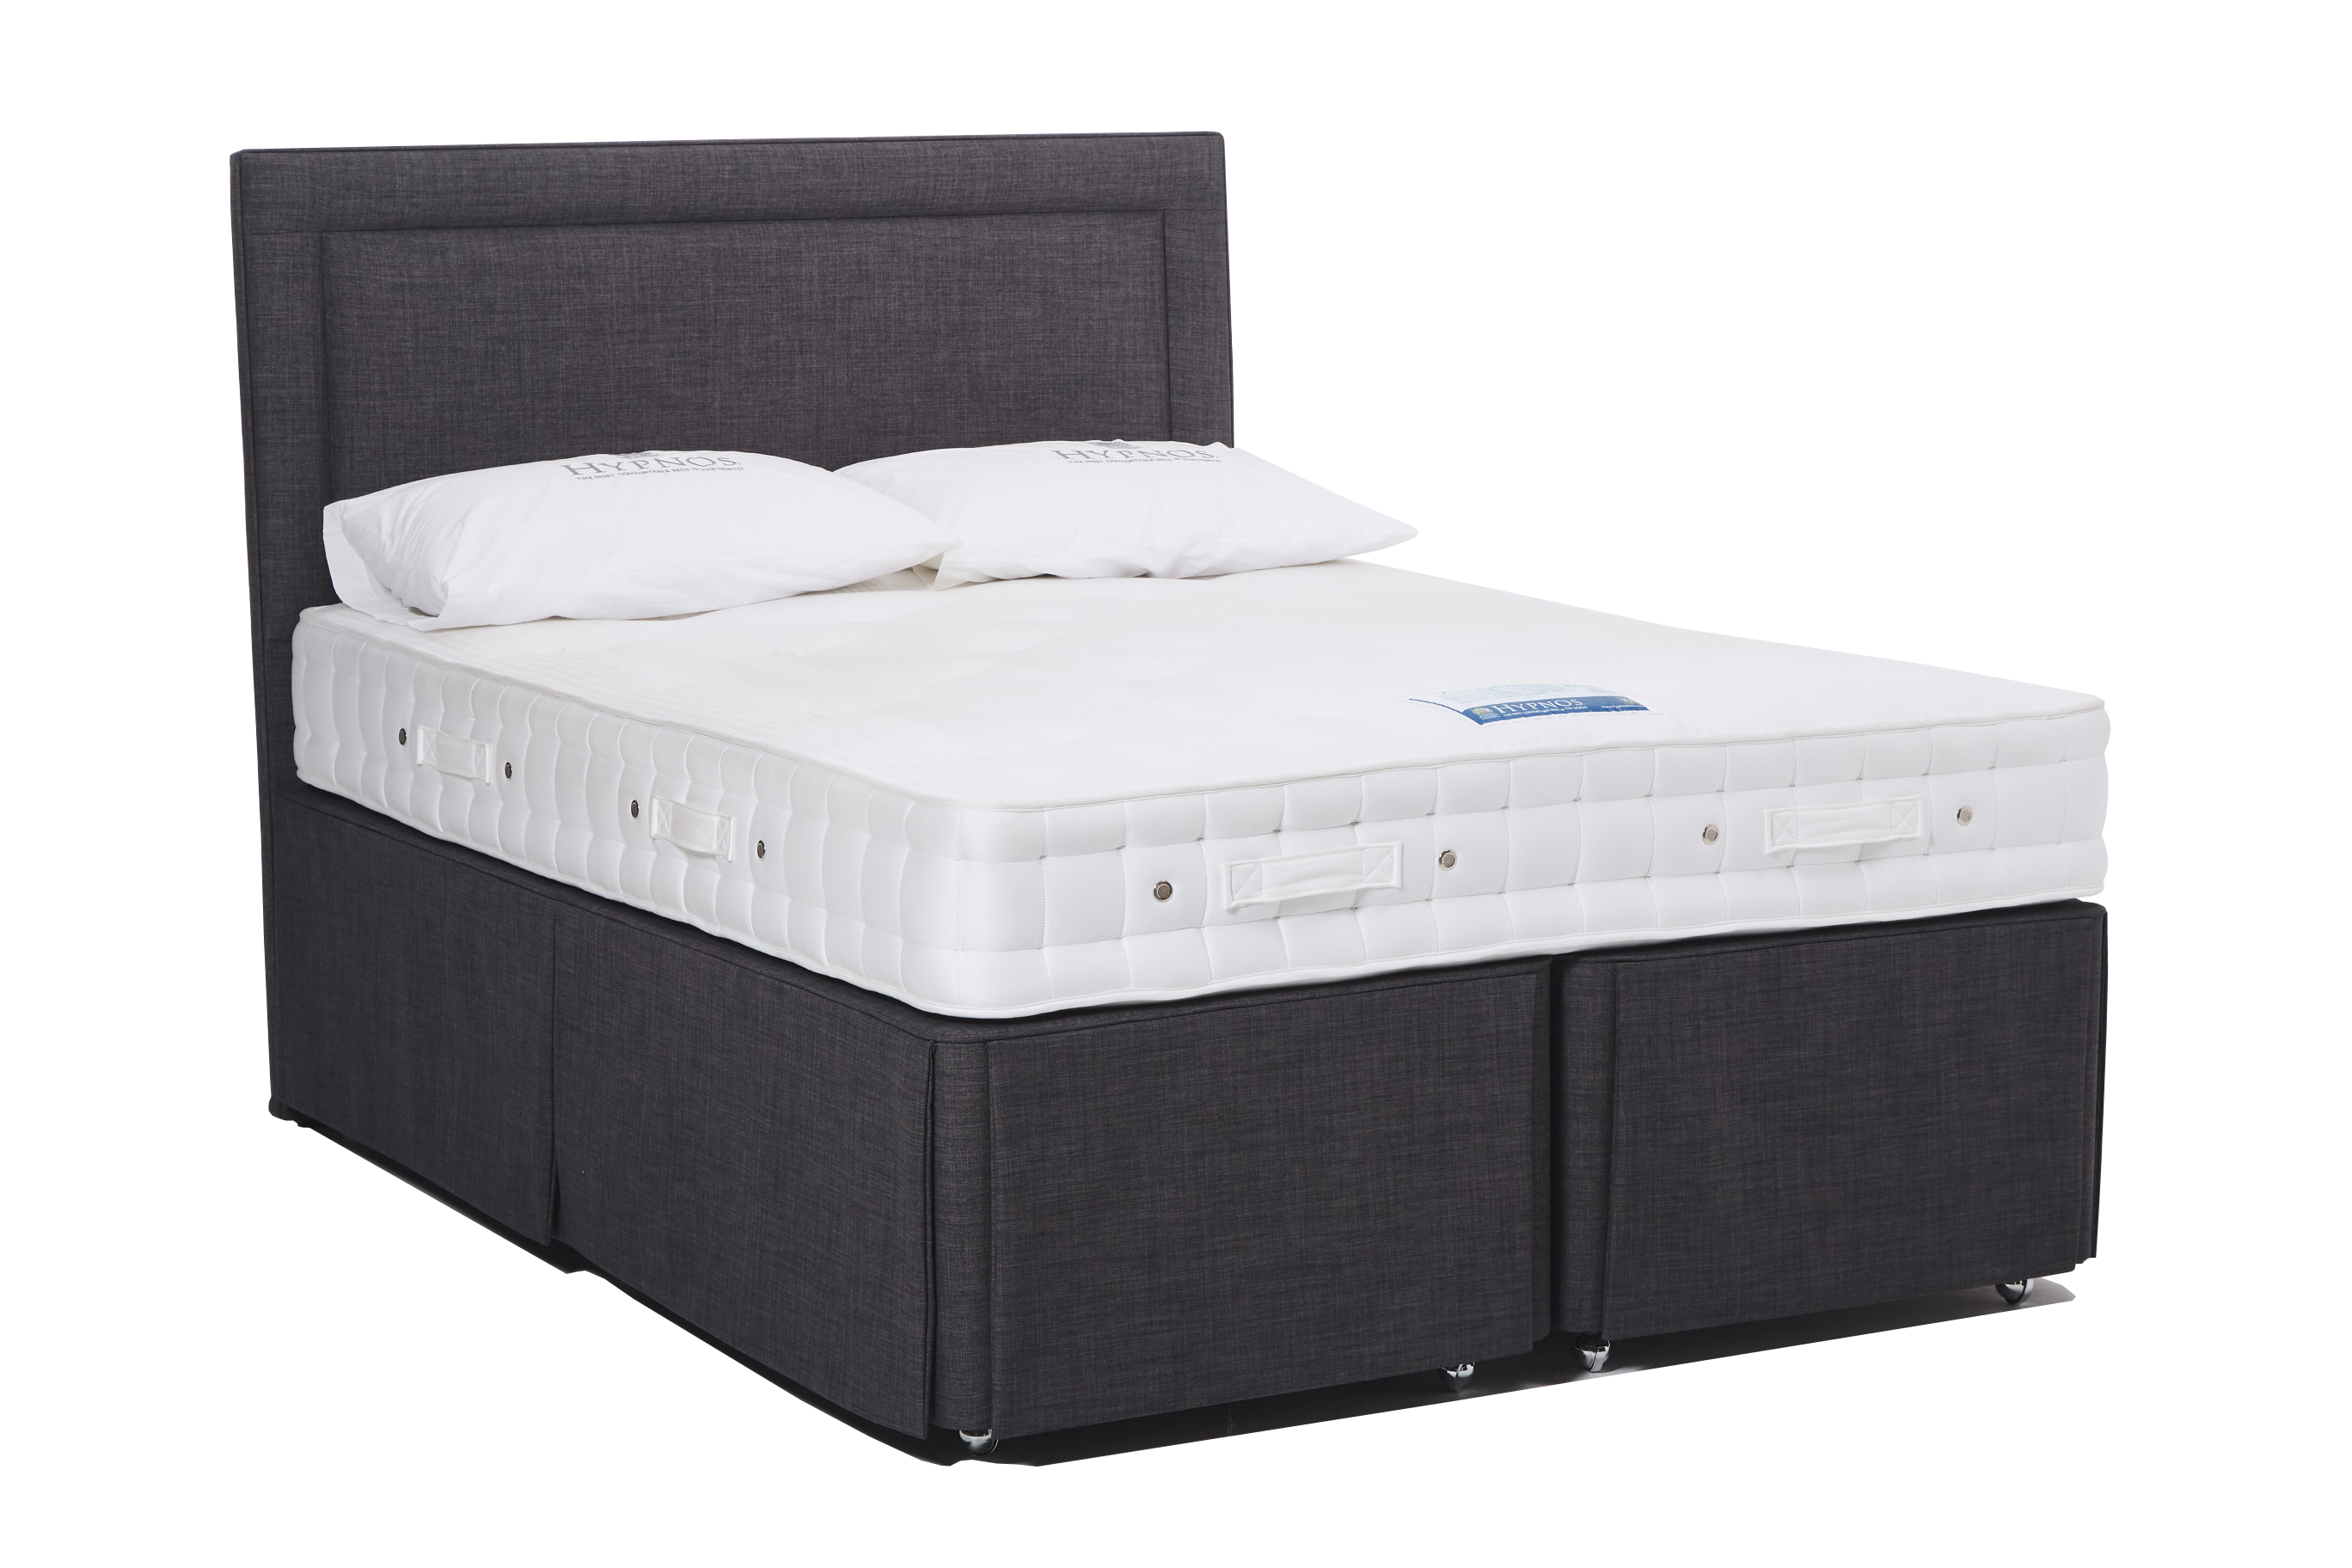 Hypnos Orthocare 8 Mattress & Divan